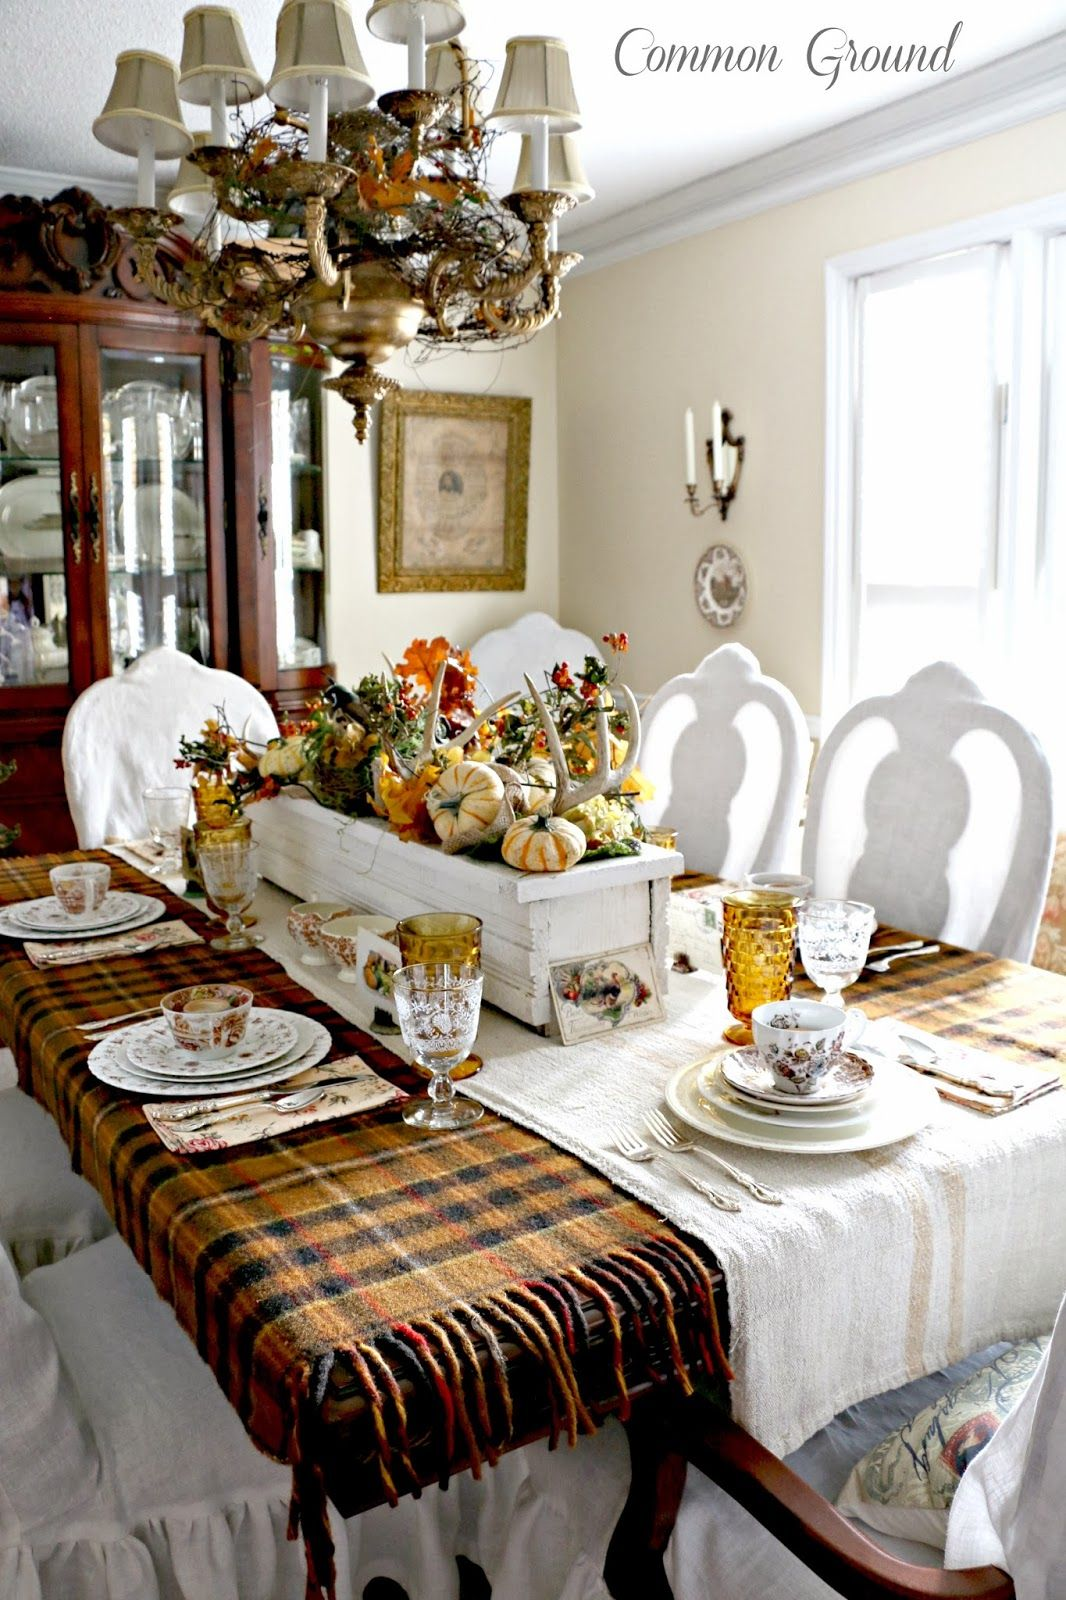 Wedding decorations wedding reception ideas november 2018 Thanksgiving tablescape tartan plaid throw used as a tablecloth